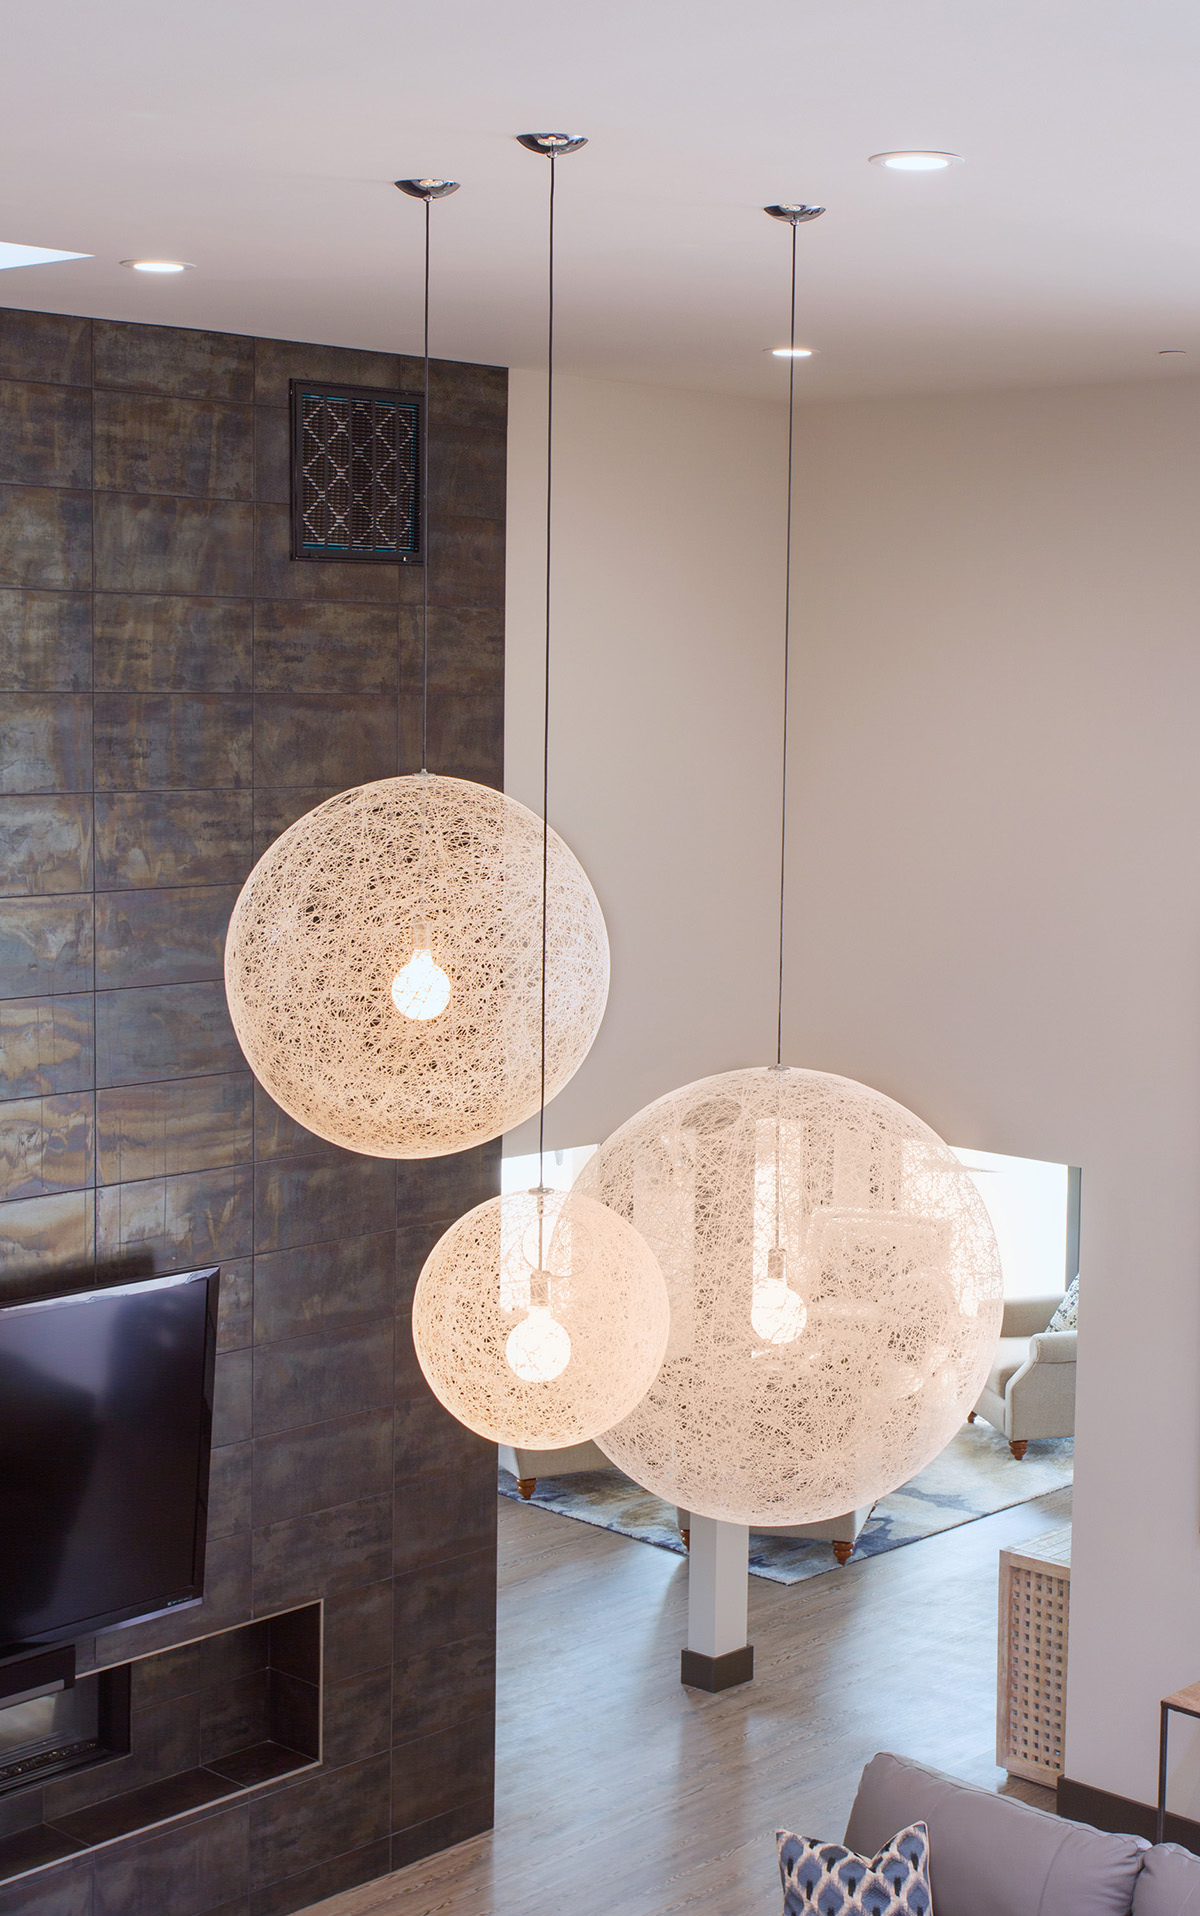 custom-lighting-interior-design-los-altos-california-ktj-design-co-1.jpg